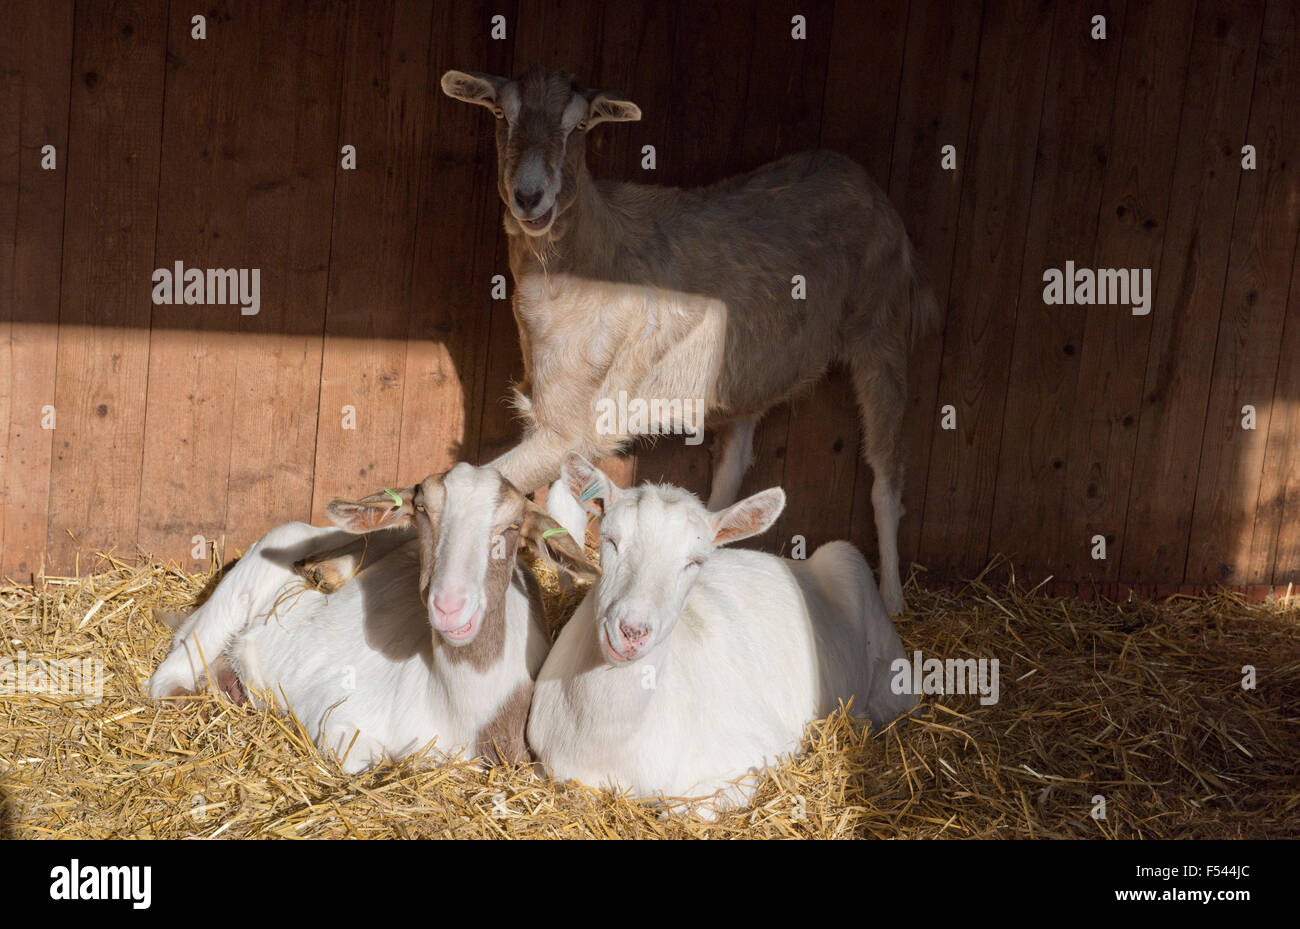 Boer, Saanen cross goats lying down in straw in a stable with a Toggenburg cross standing over them - Stock Image